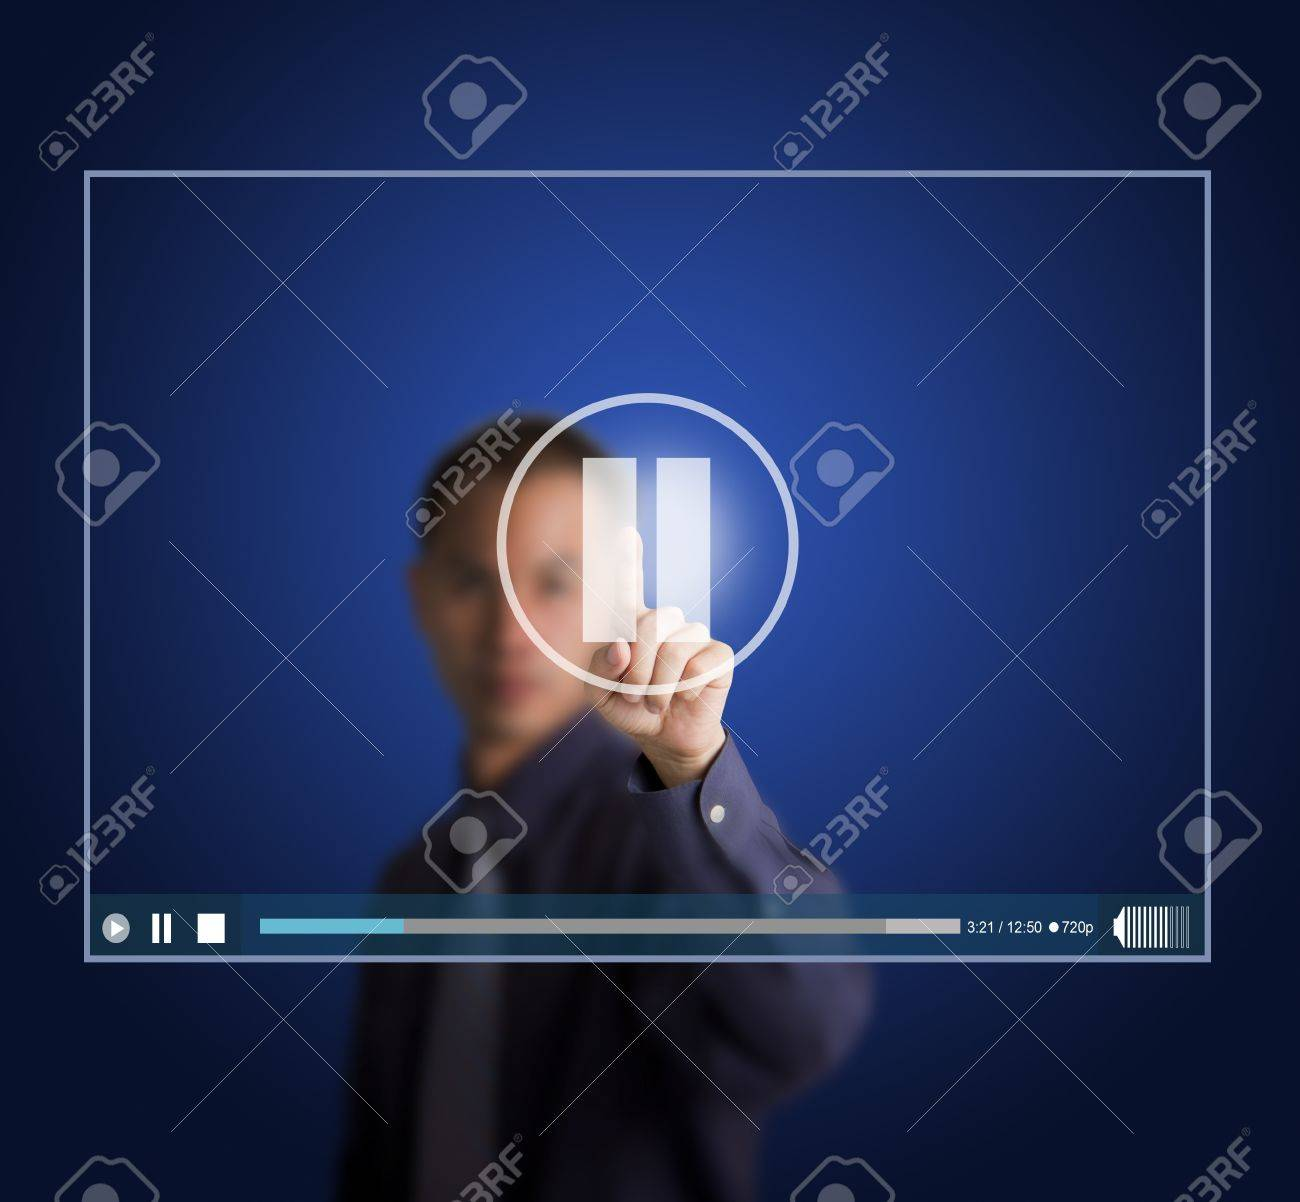 business man push pause button on touch screen to suspend video clip Stock Photo - 13225037